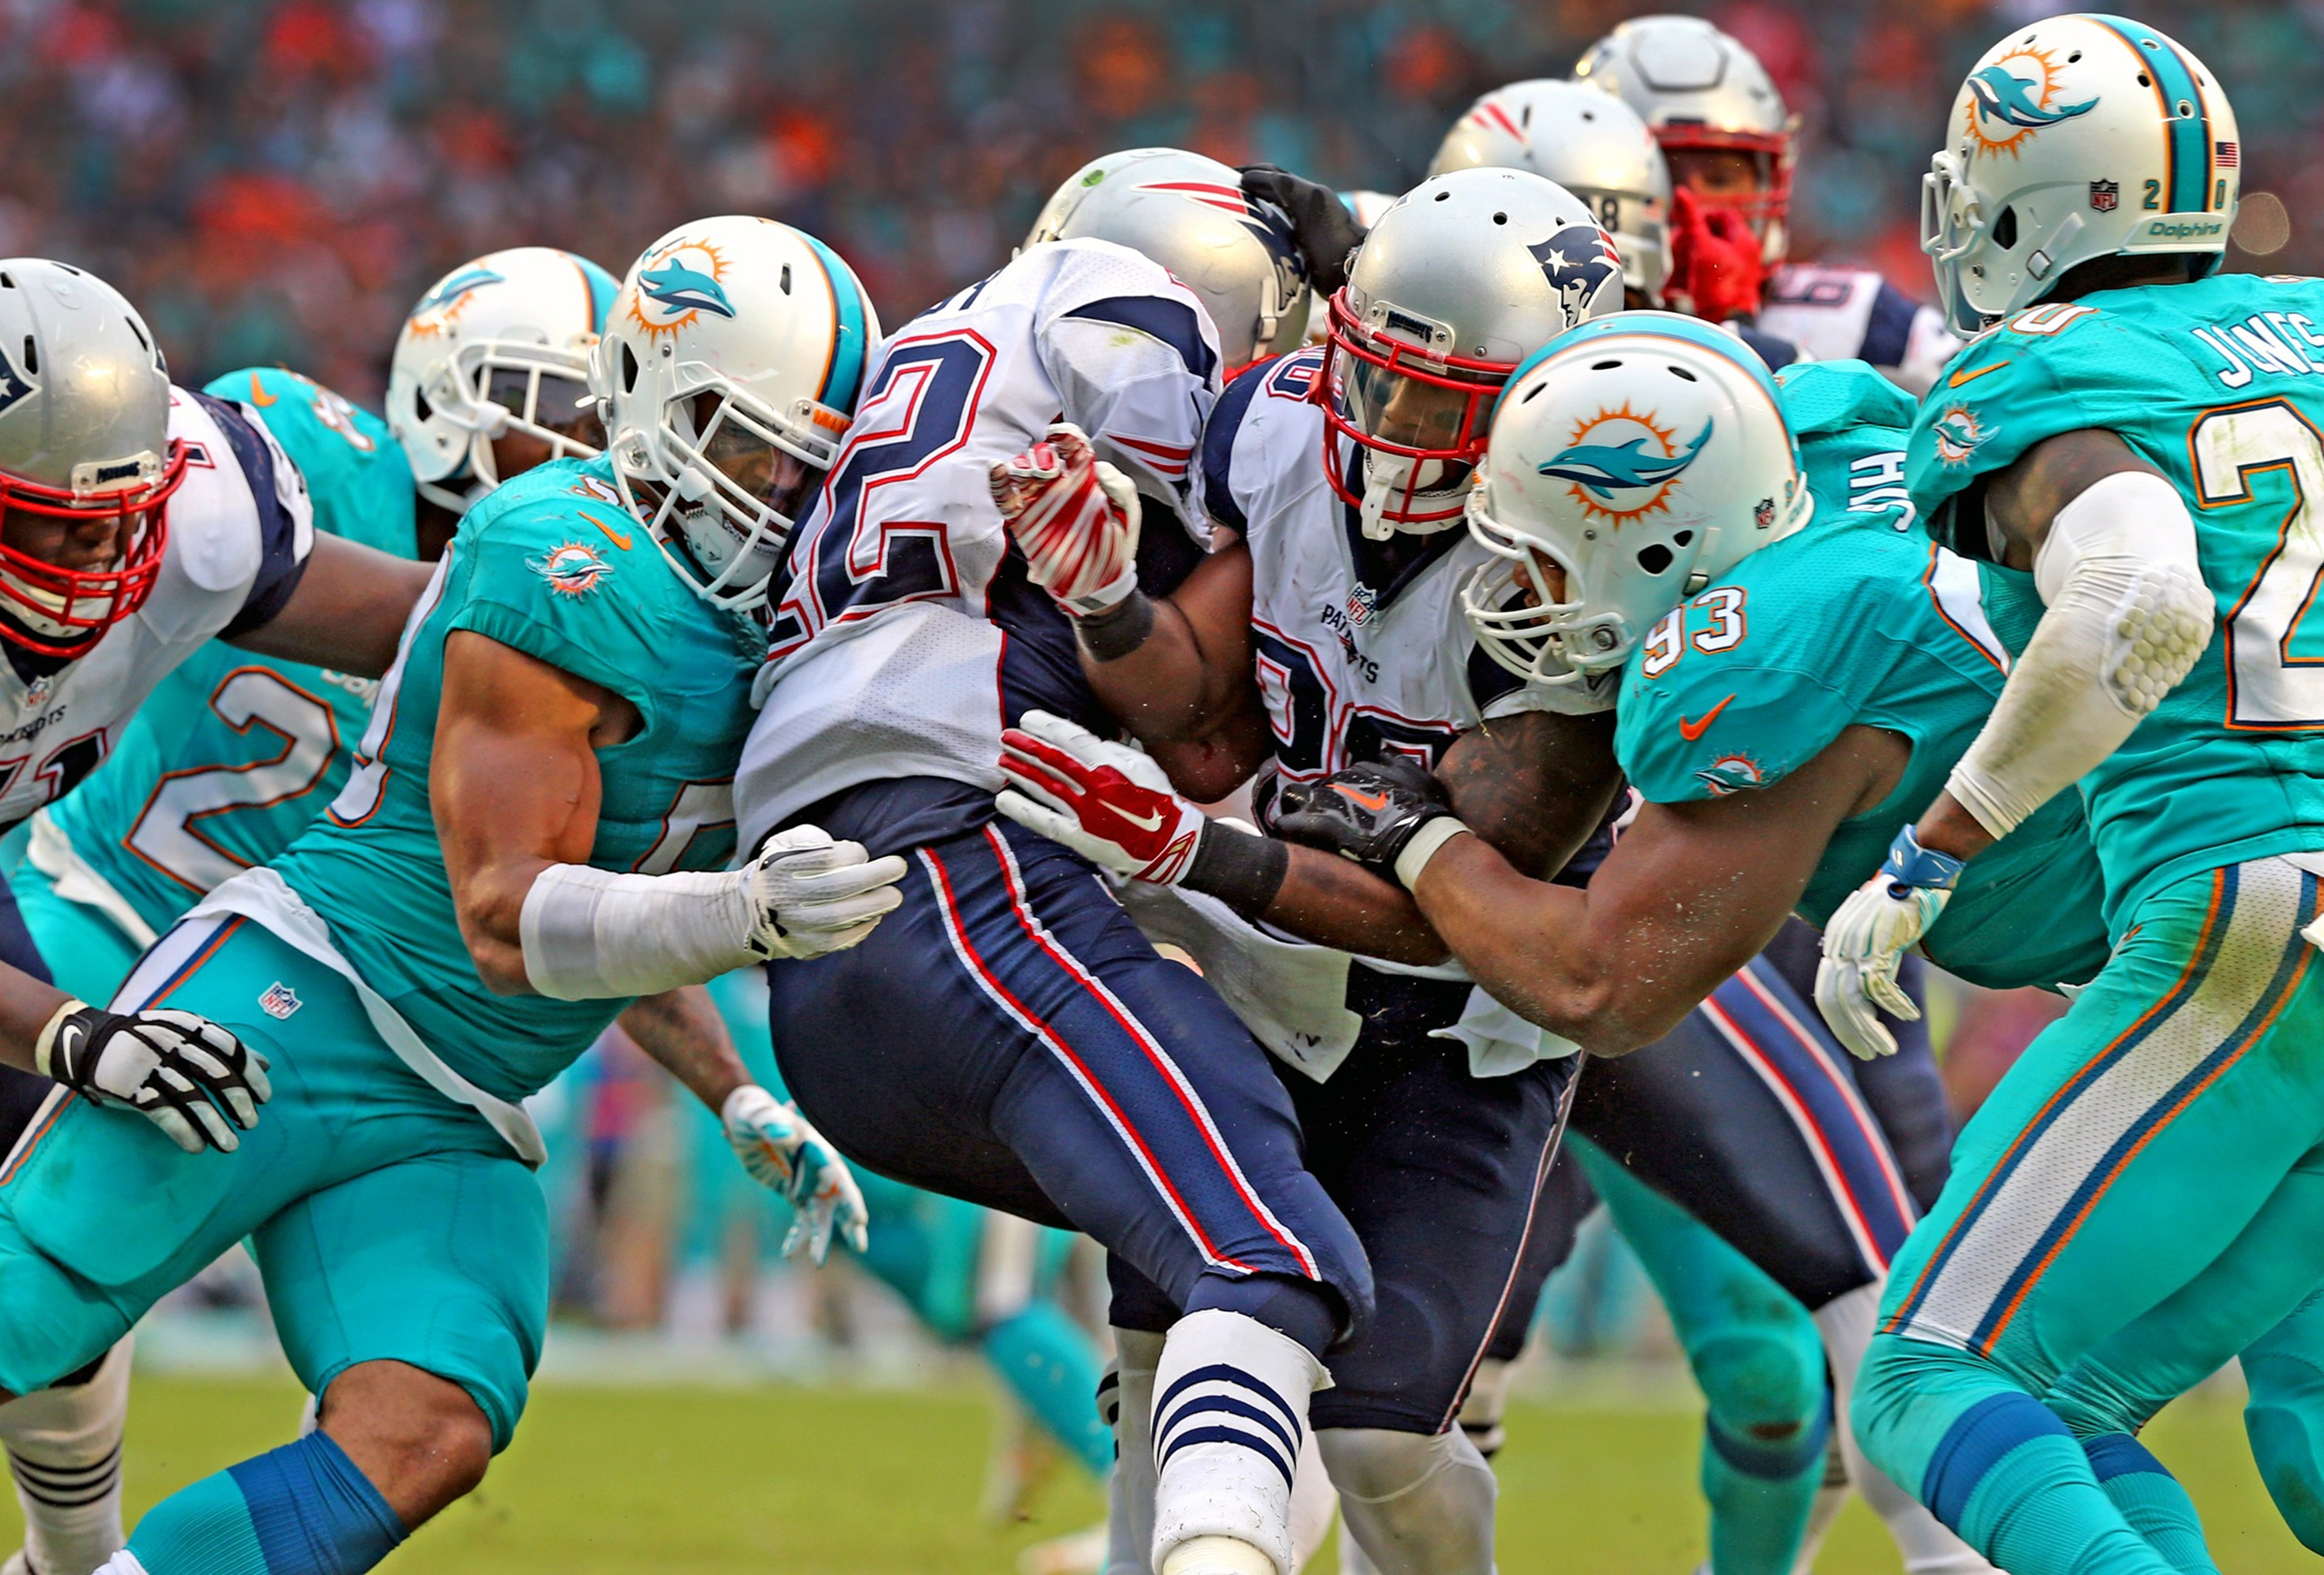 Tom Brady and the Patriots had a long day against the Dolphins and wound up losing to Miami. The defeat cost New England the top seed in the AFC playoffs.